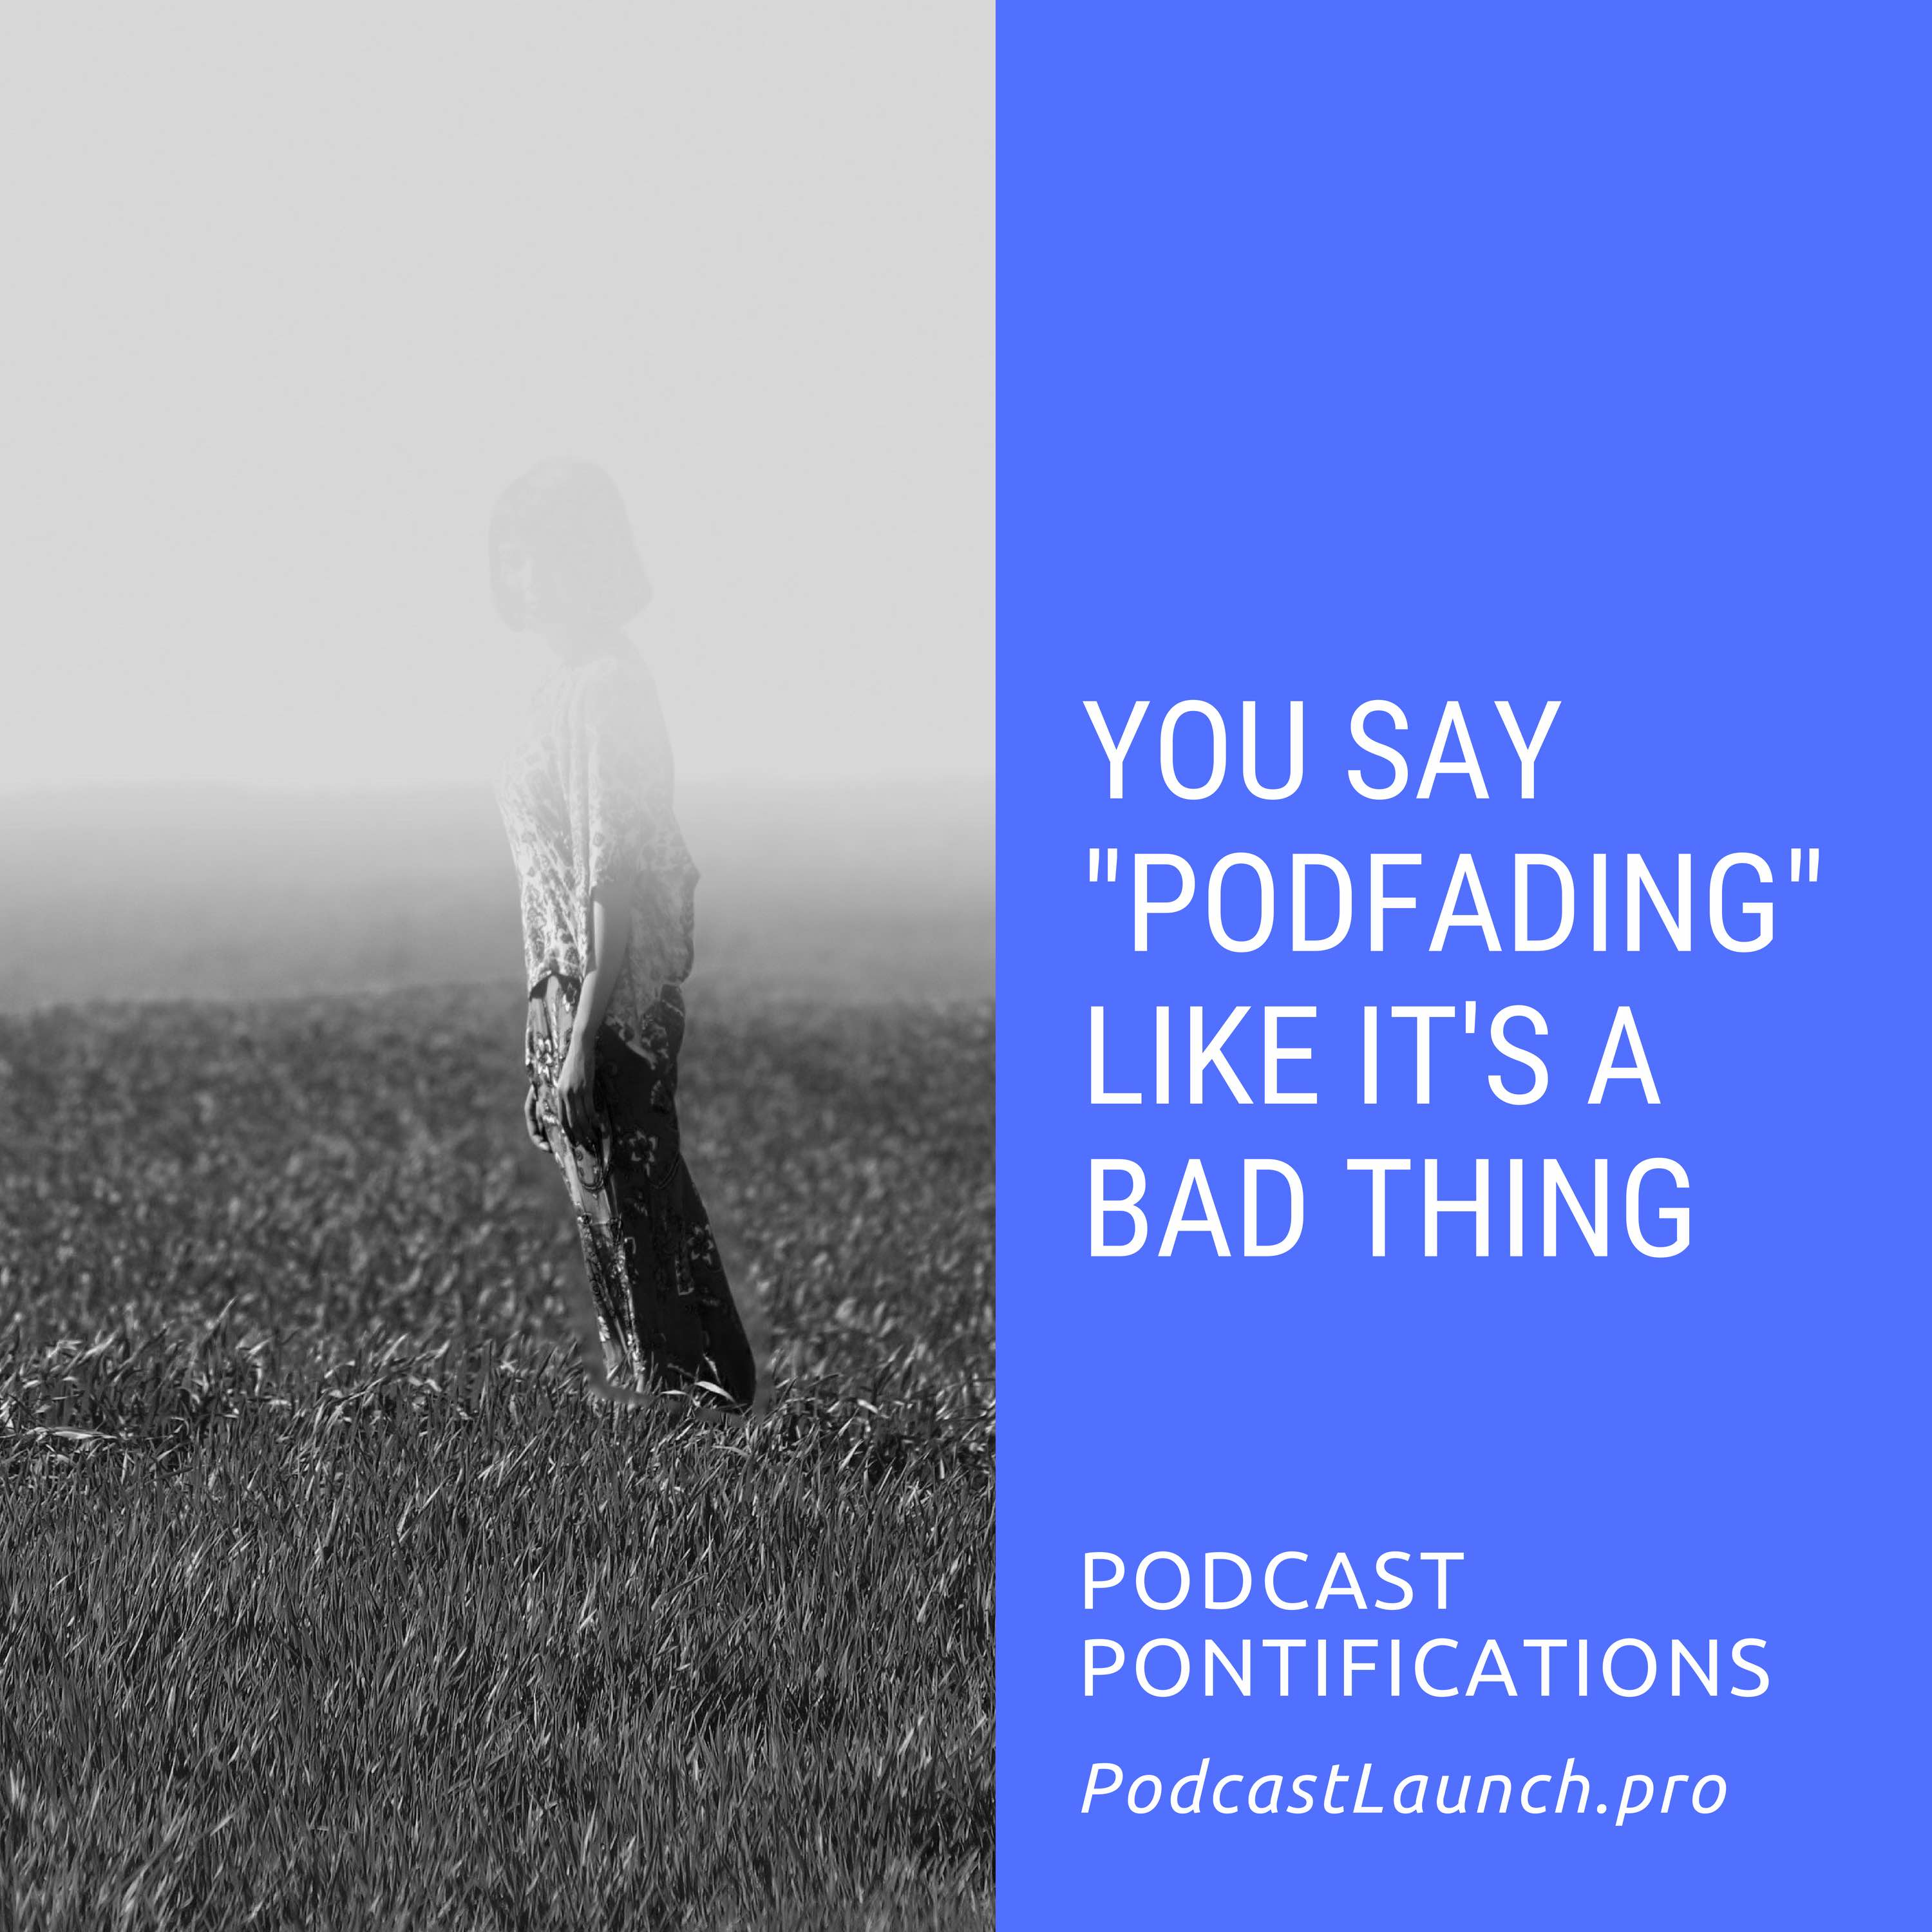 You Say Podfading Like It's A Bad Thing